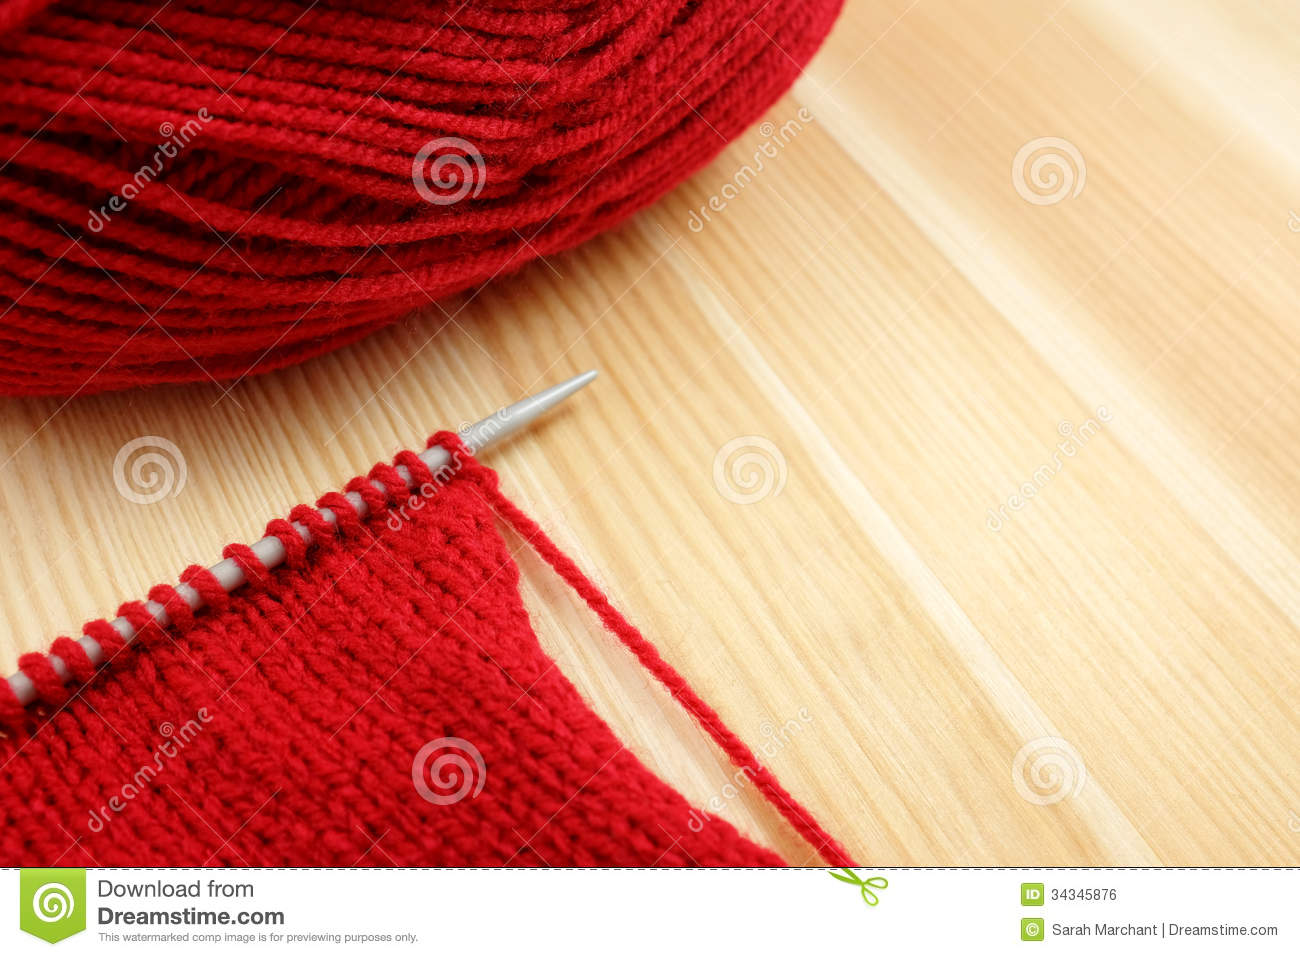 Knitting Stockinette Stitch With Circular Needles : Stockinette Stitch On Knitting Needle With Red Wool Royalty Free Stock Image ...